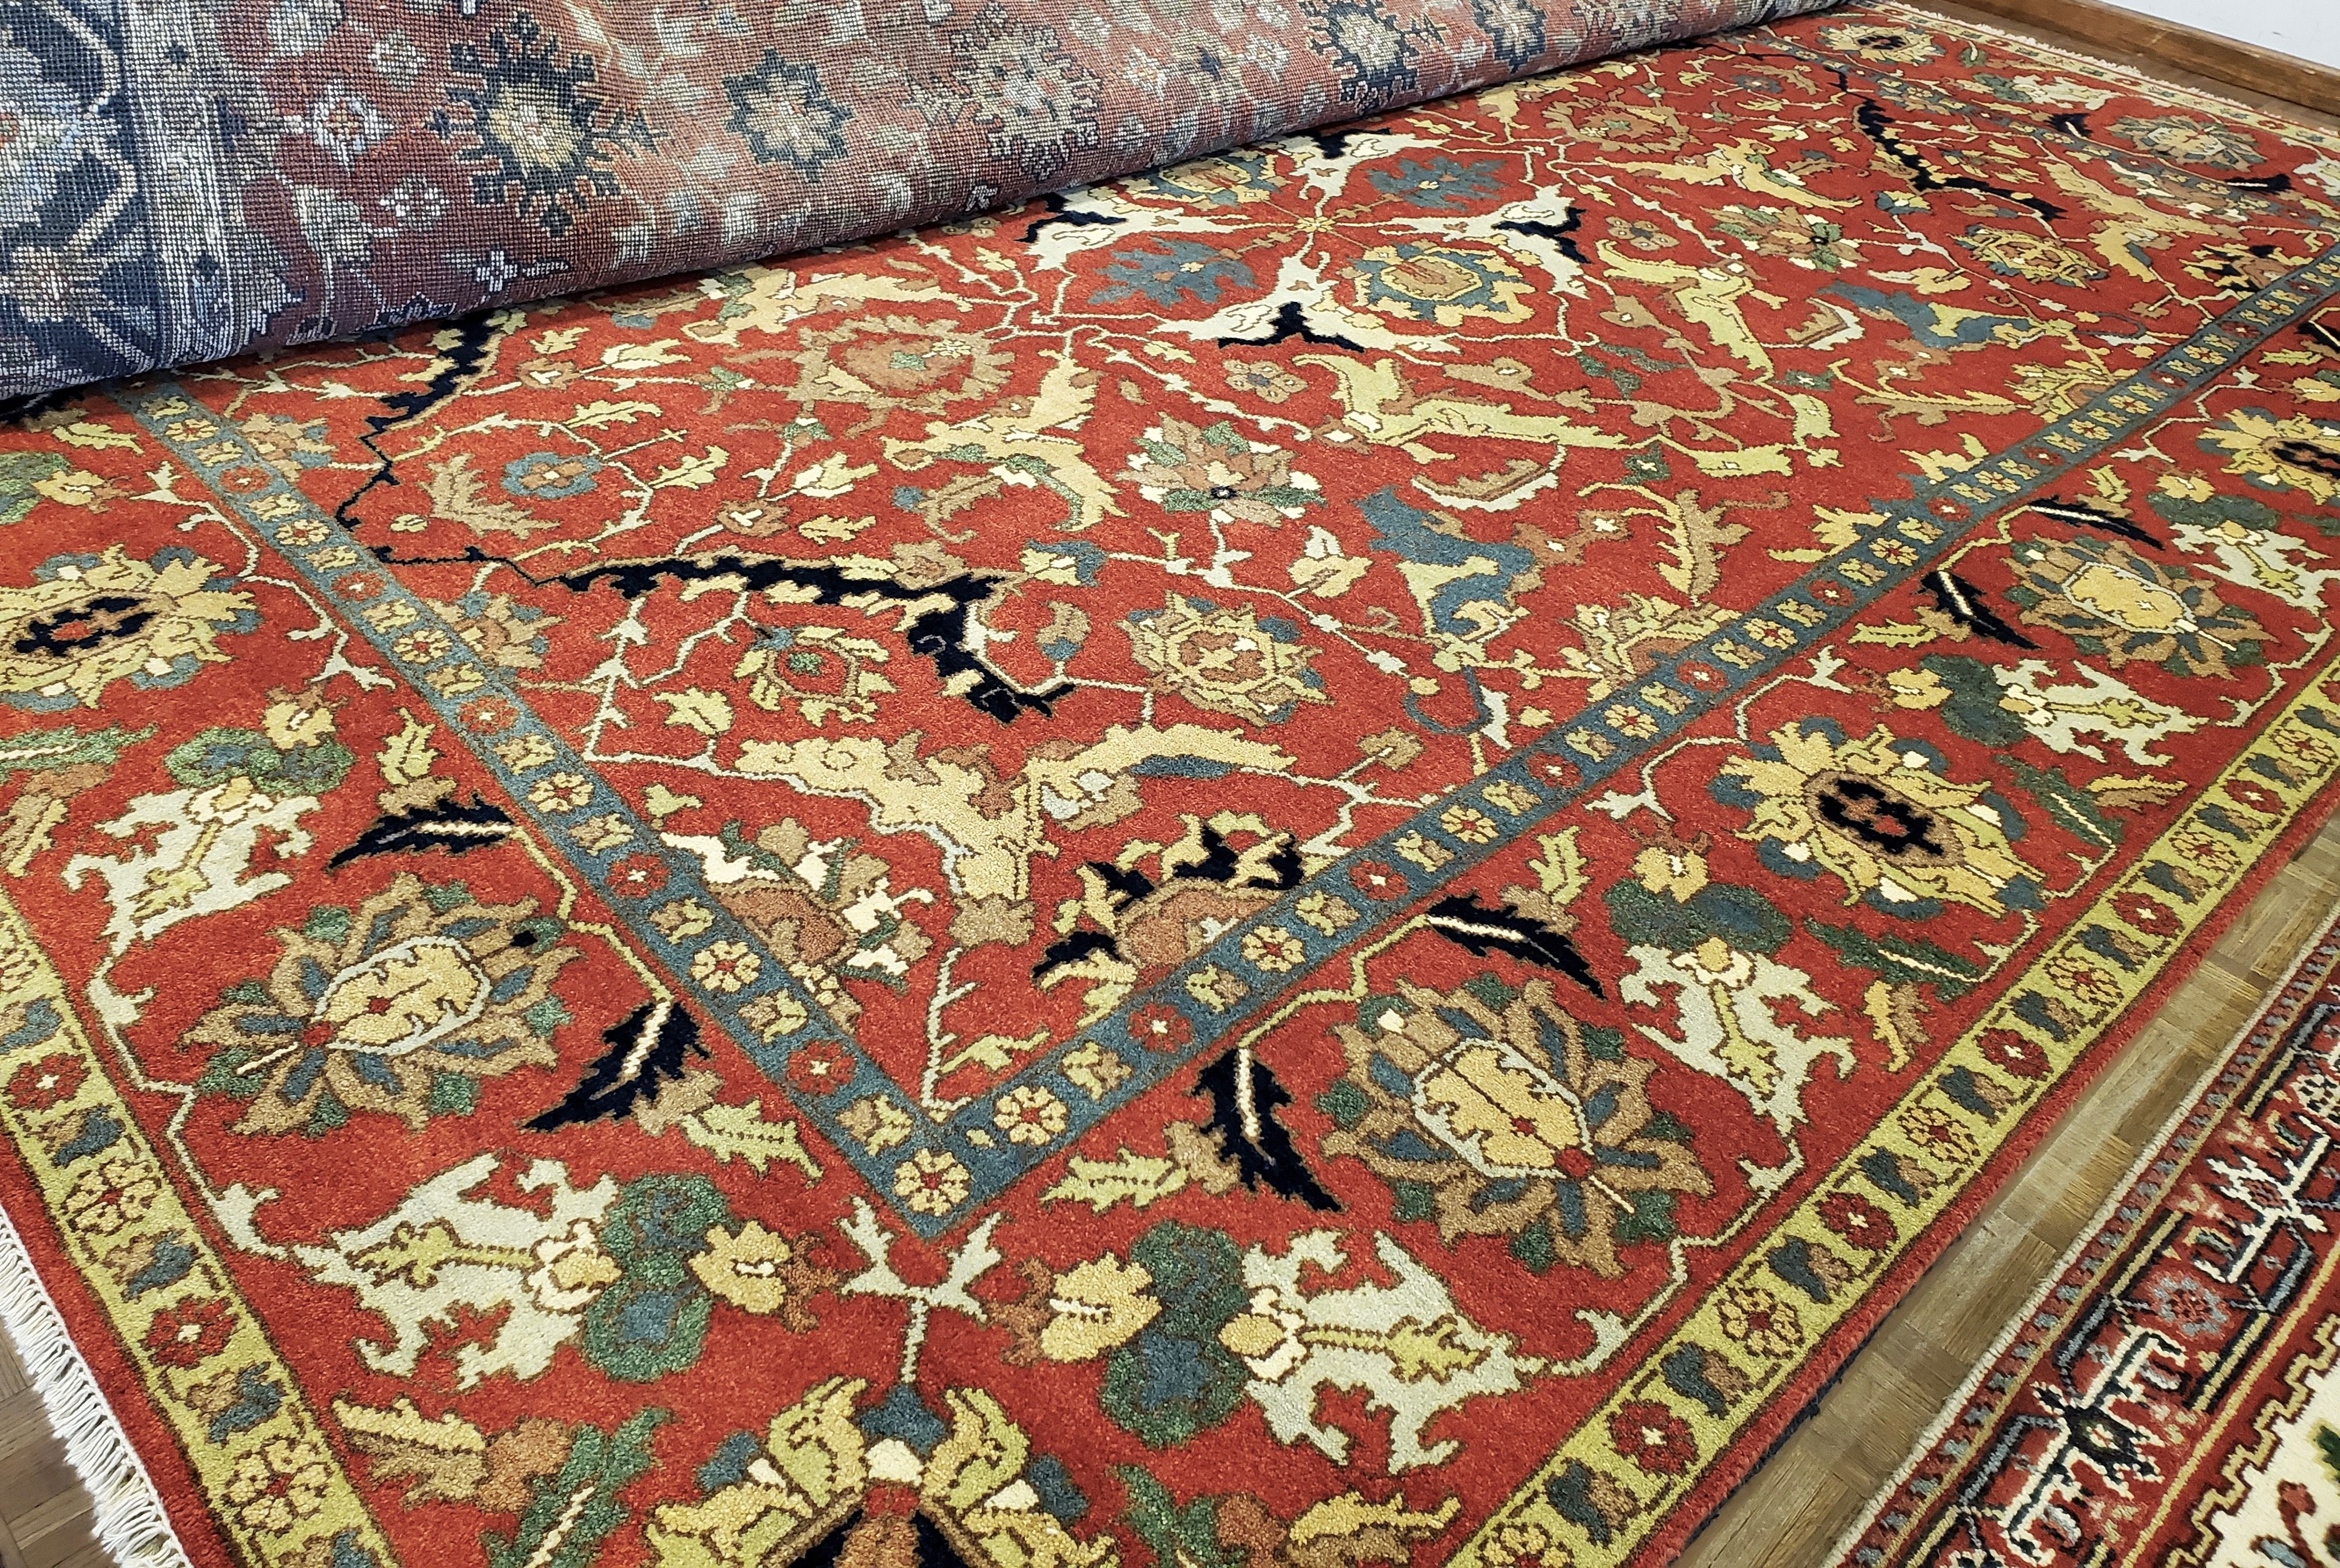 May Day Deal! 💃🏼 Vintage SERAPI Oriental Rug  9x12 $1975 reduce from $4950 Call 205-870-4444 or drop by if it's for you!  Please share!  #nilipourorientalrugs #MayDayDeal #familybusiness #since1972 #fullservice #shoplocal #happycustomer #artyoucantreadon #orientalrug #rug #arearug #naturalfibers #wholesaleprices #directimporting #affordableluxury #functionalrug #practicalrug #appeal #qualityrug #investment #conversationpiece #Lifestyle #rugcleaning #orientalrugcleaning #arearugcleaning